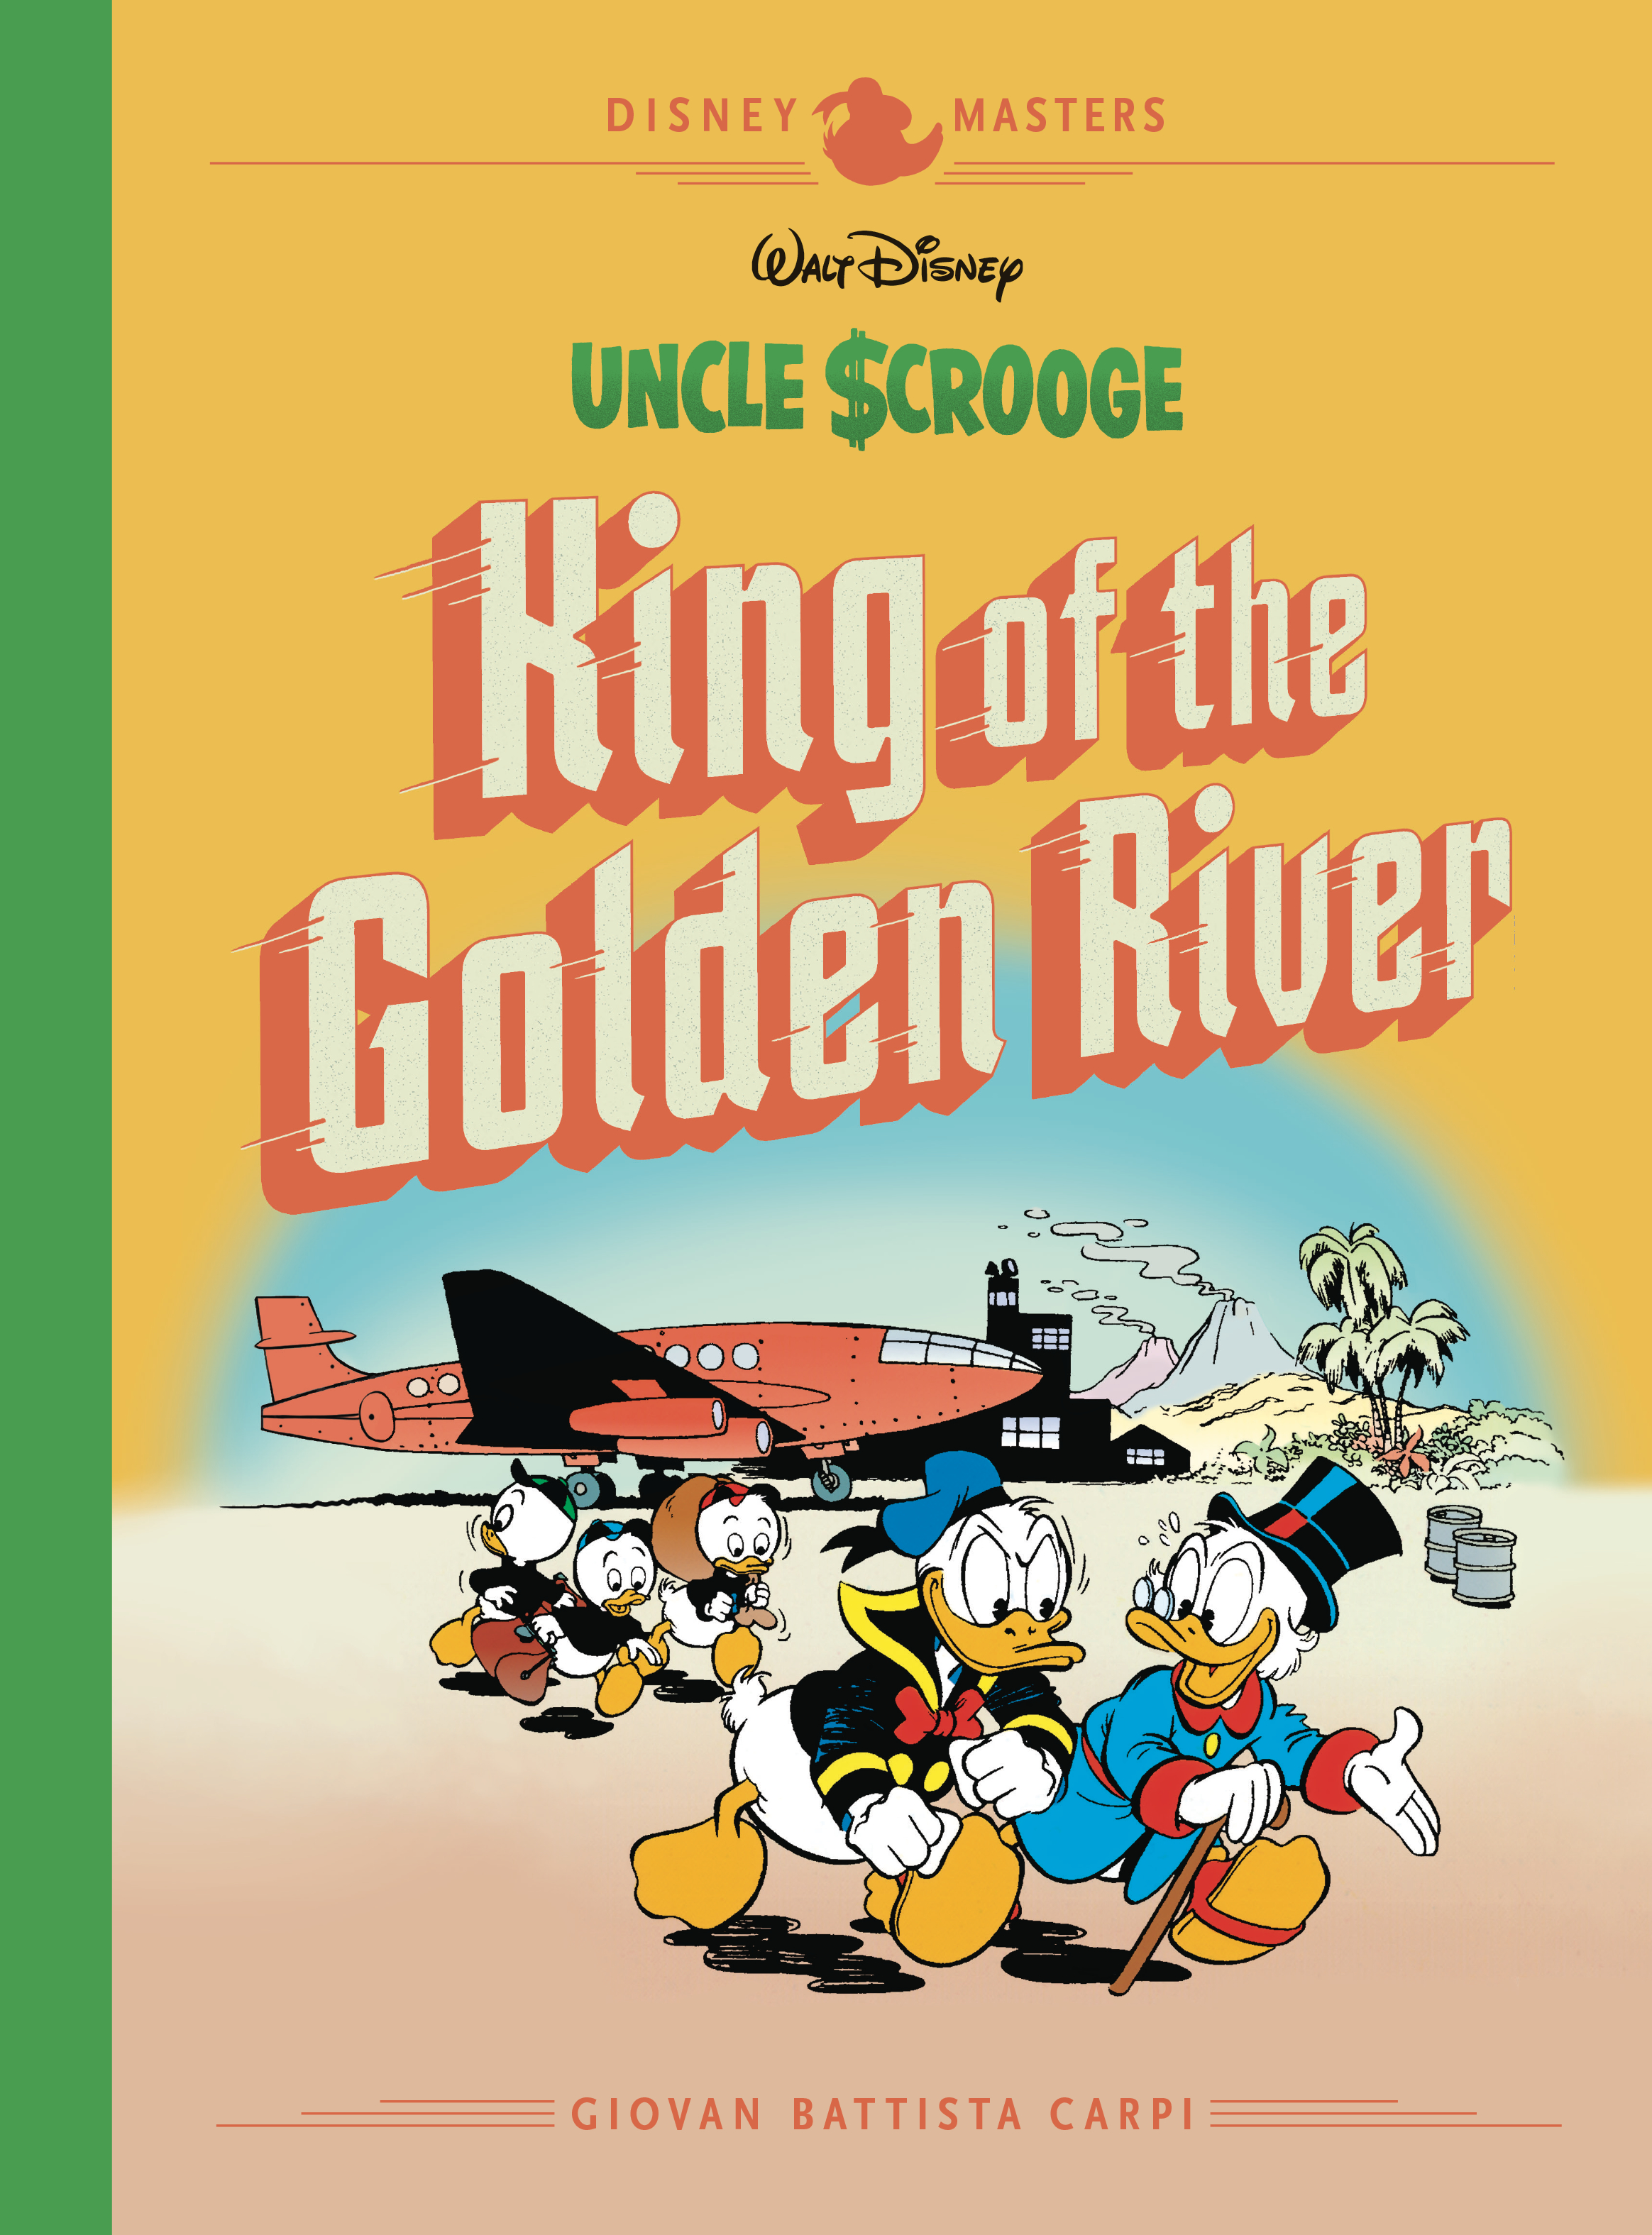 DISNEY MASTERS HC VOL 06 CARPI SCROOGE GOLDEN RIVER